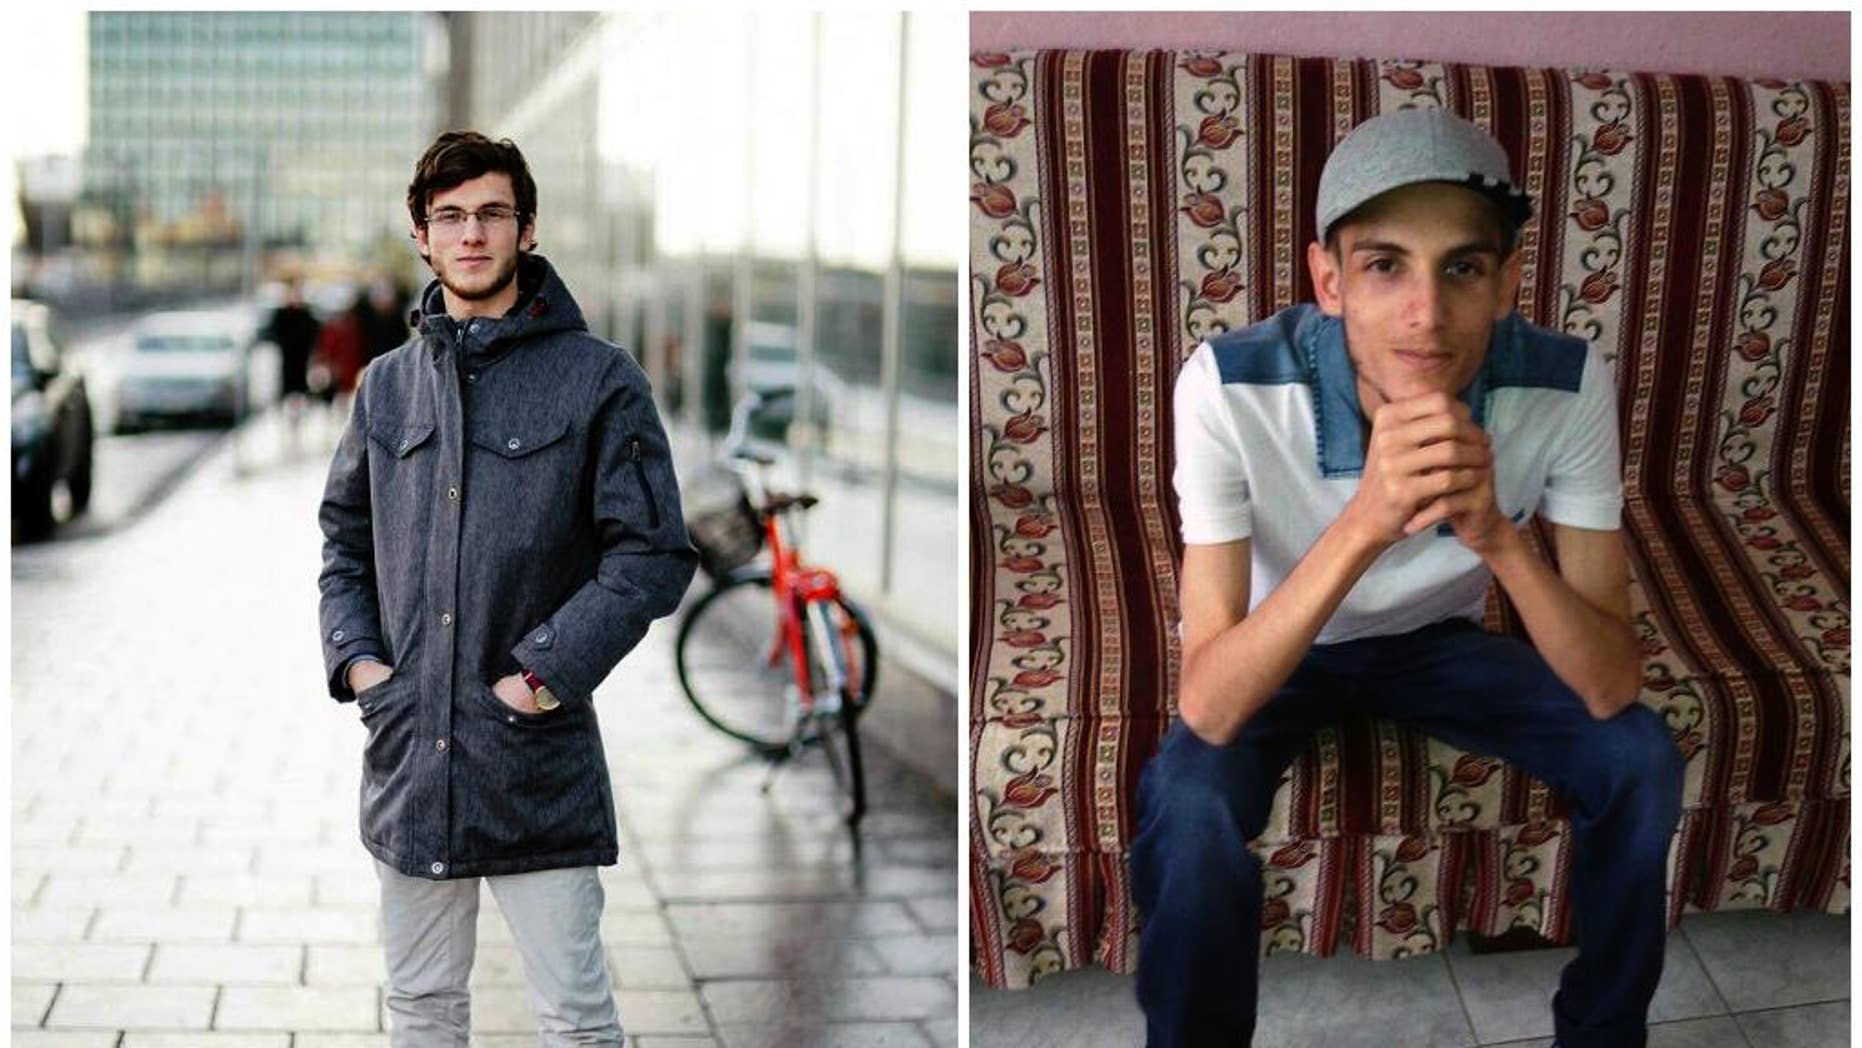 """COMBO - In this combination of two photos of Omar Alshogre, a 21-year Syrian former detainee, now living in Stockholm, Sweden. The left picture is of Alshogre taken on January 2017 in Stockholm, Sweden. The right picture is of Alshogre in July 2015 in Antakya, Turkey, a month after he got out of Syria's Saydnaya prison, near Damascus. While in detention, Alshogre said he heard men escorted to be hanged and had himself been called for """"execution"""" but was spared after a brief trial. Amnesty published a new report on Tuesday revealing that as many as 13,000 men were hanged in secret in a Syrian prison between 2011 and 2015, as part of a government campaign of extrajudicial executions. The group says for five years, once or twice weekly, groups of up to 50 people were taken out of their prison cells and hanged to death. (Handout by Omar Alshogre via AP)"""